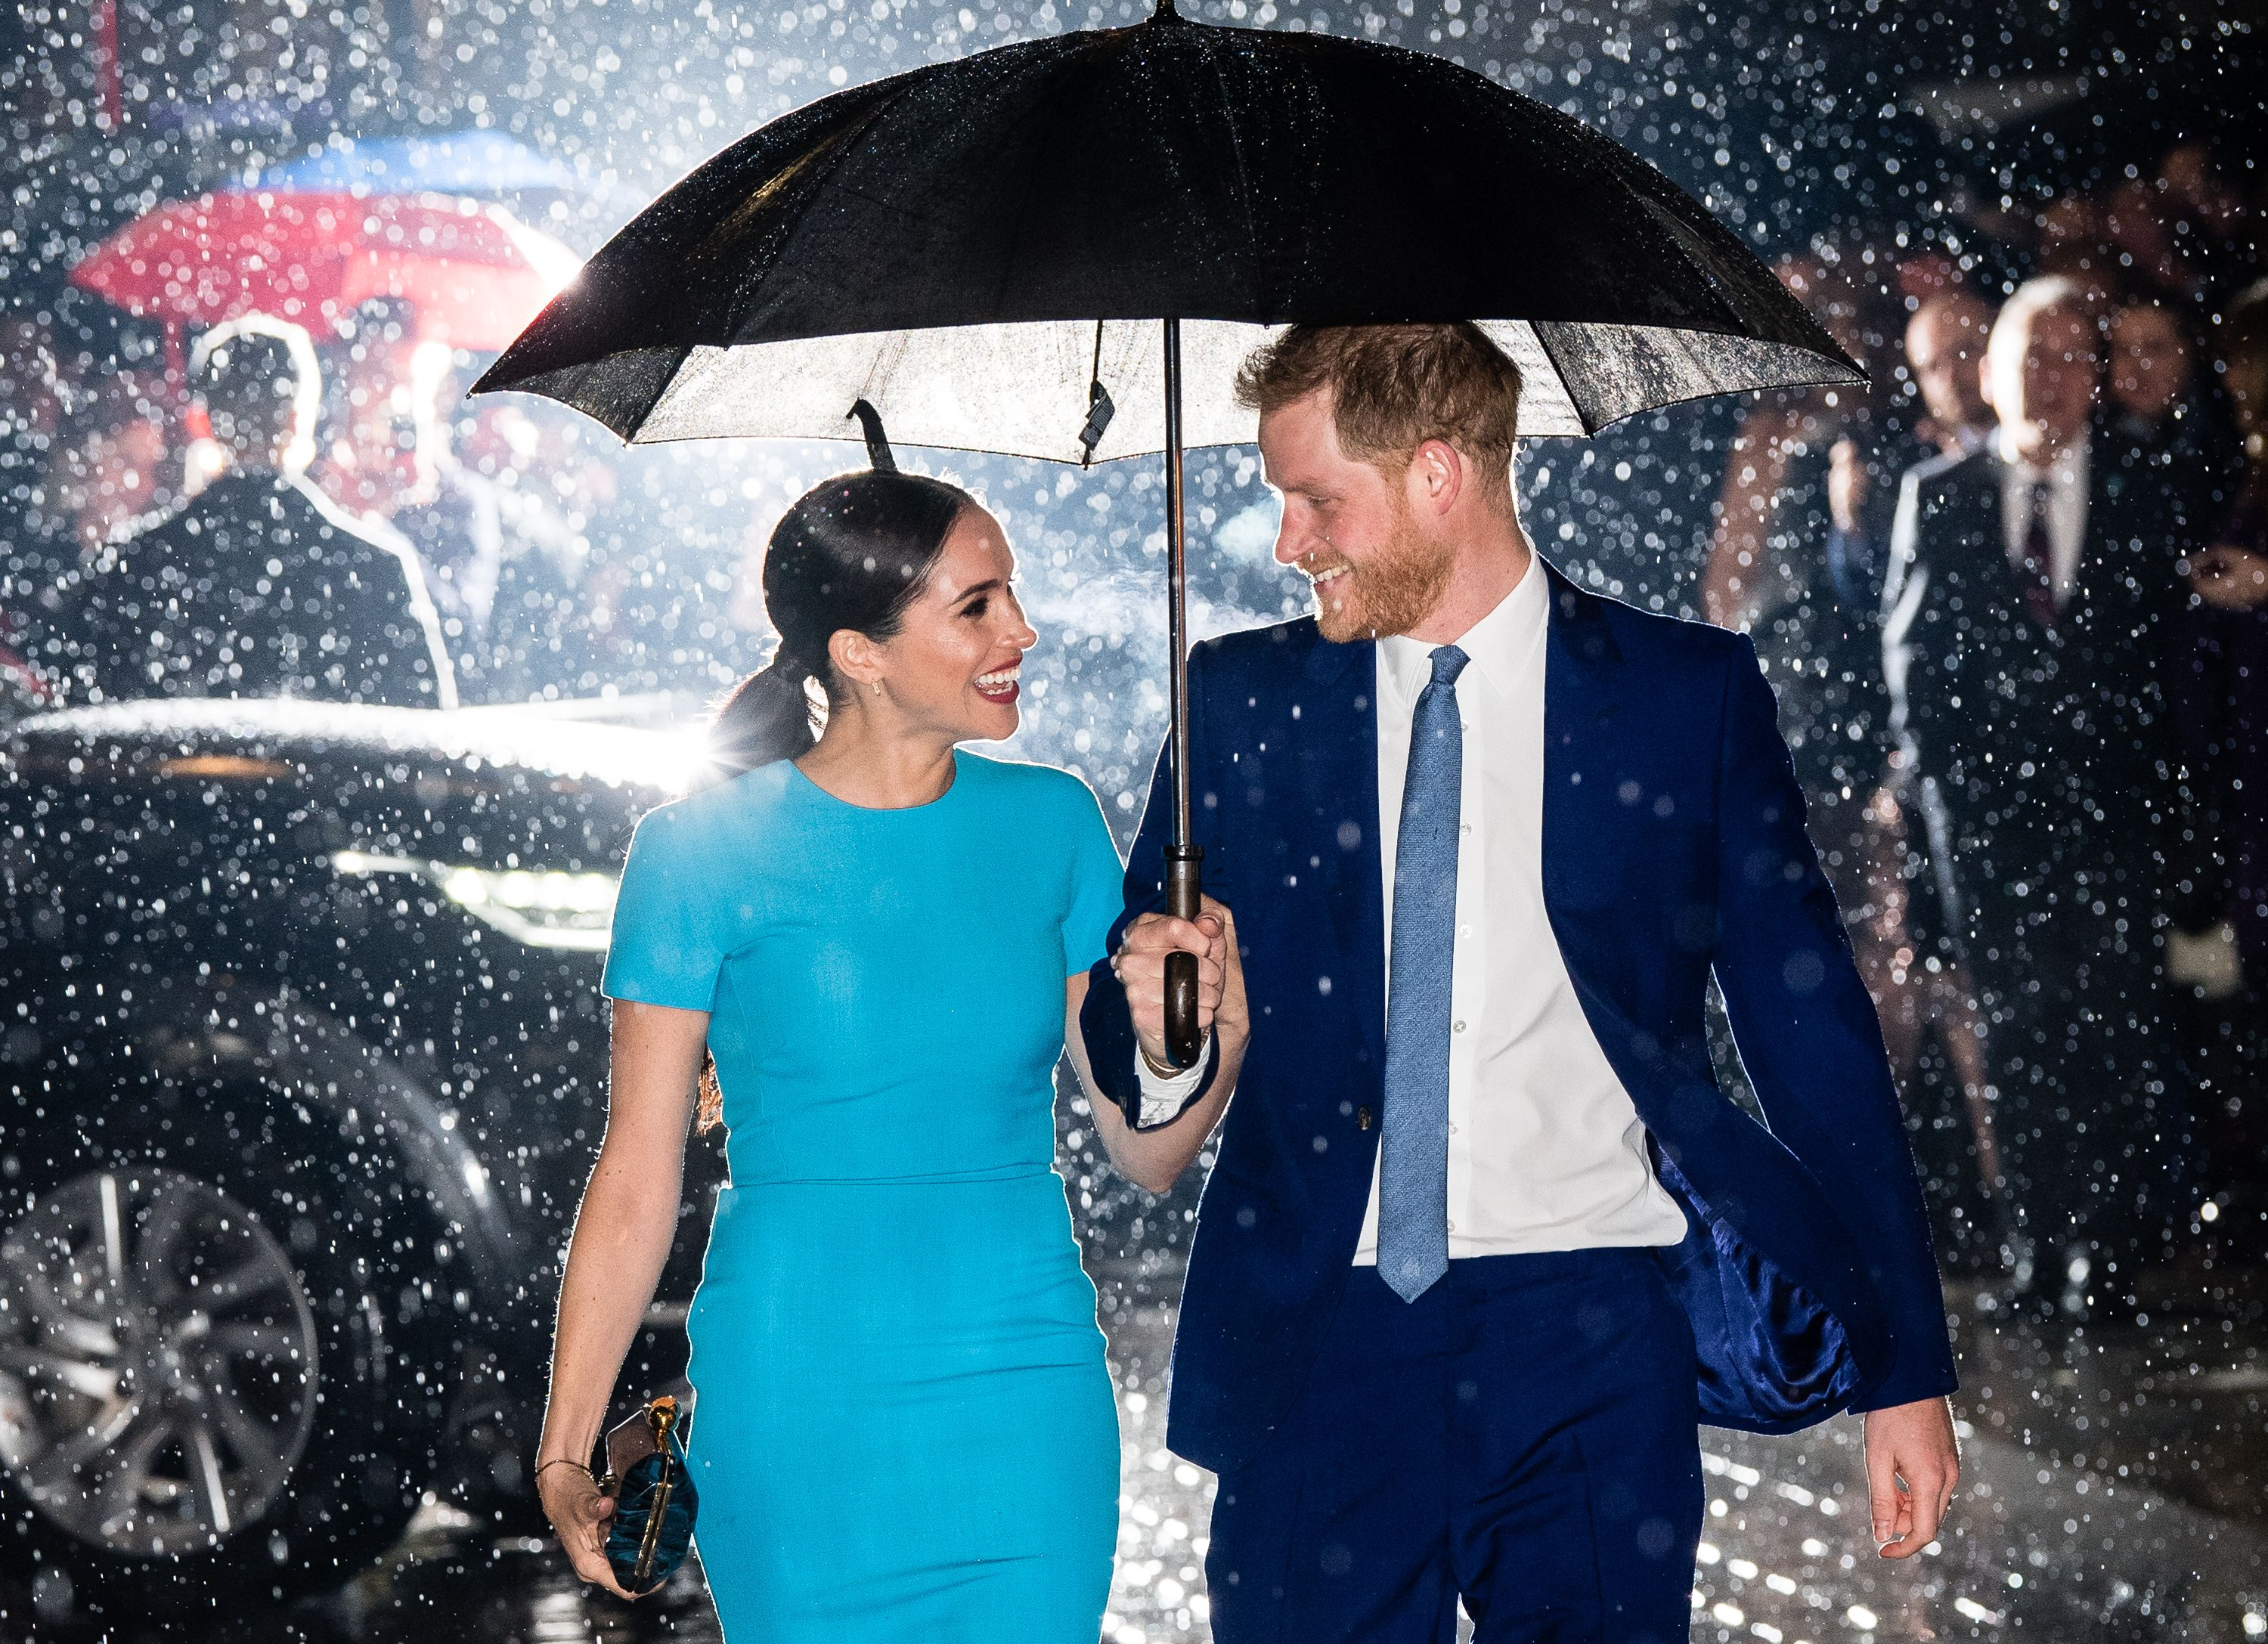 Prince Harry and Meghan Markle are off to a happy new start in the USA / Getty Images